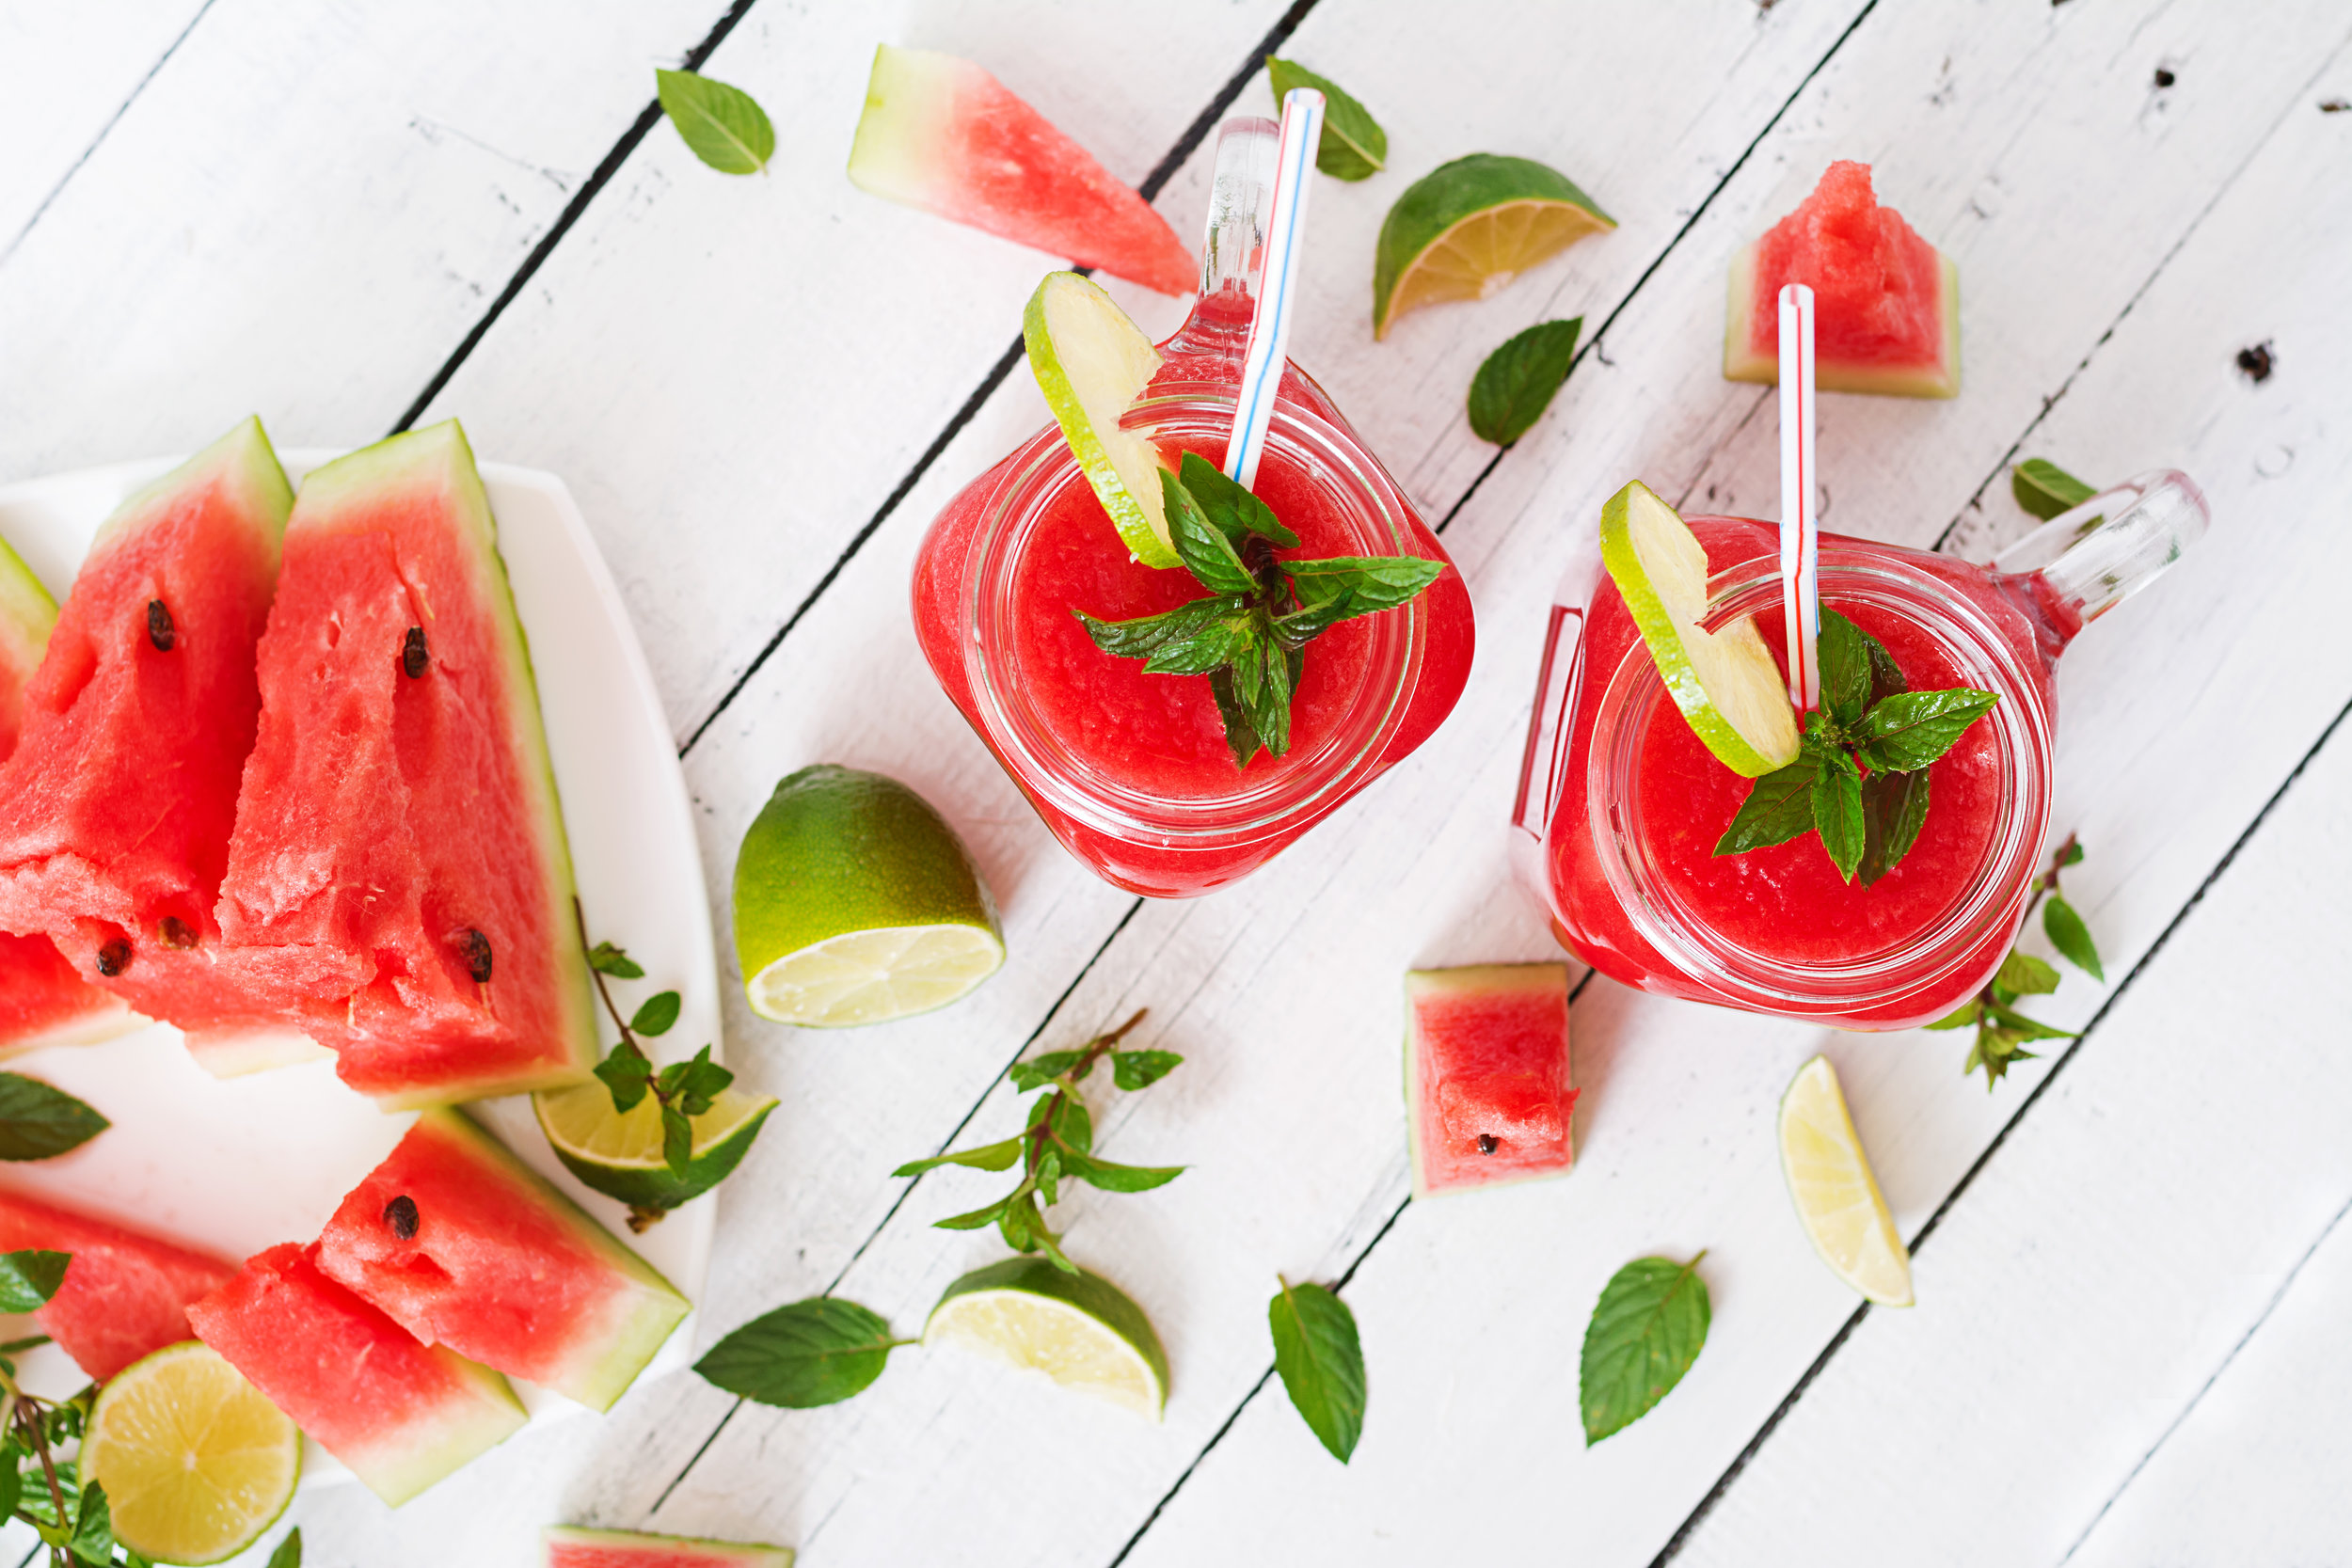 fresh-watermelon-smoothies-with-lime-and-mint-on-PNQ5UZJ.jpg